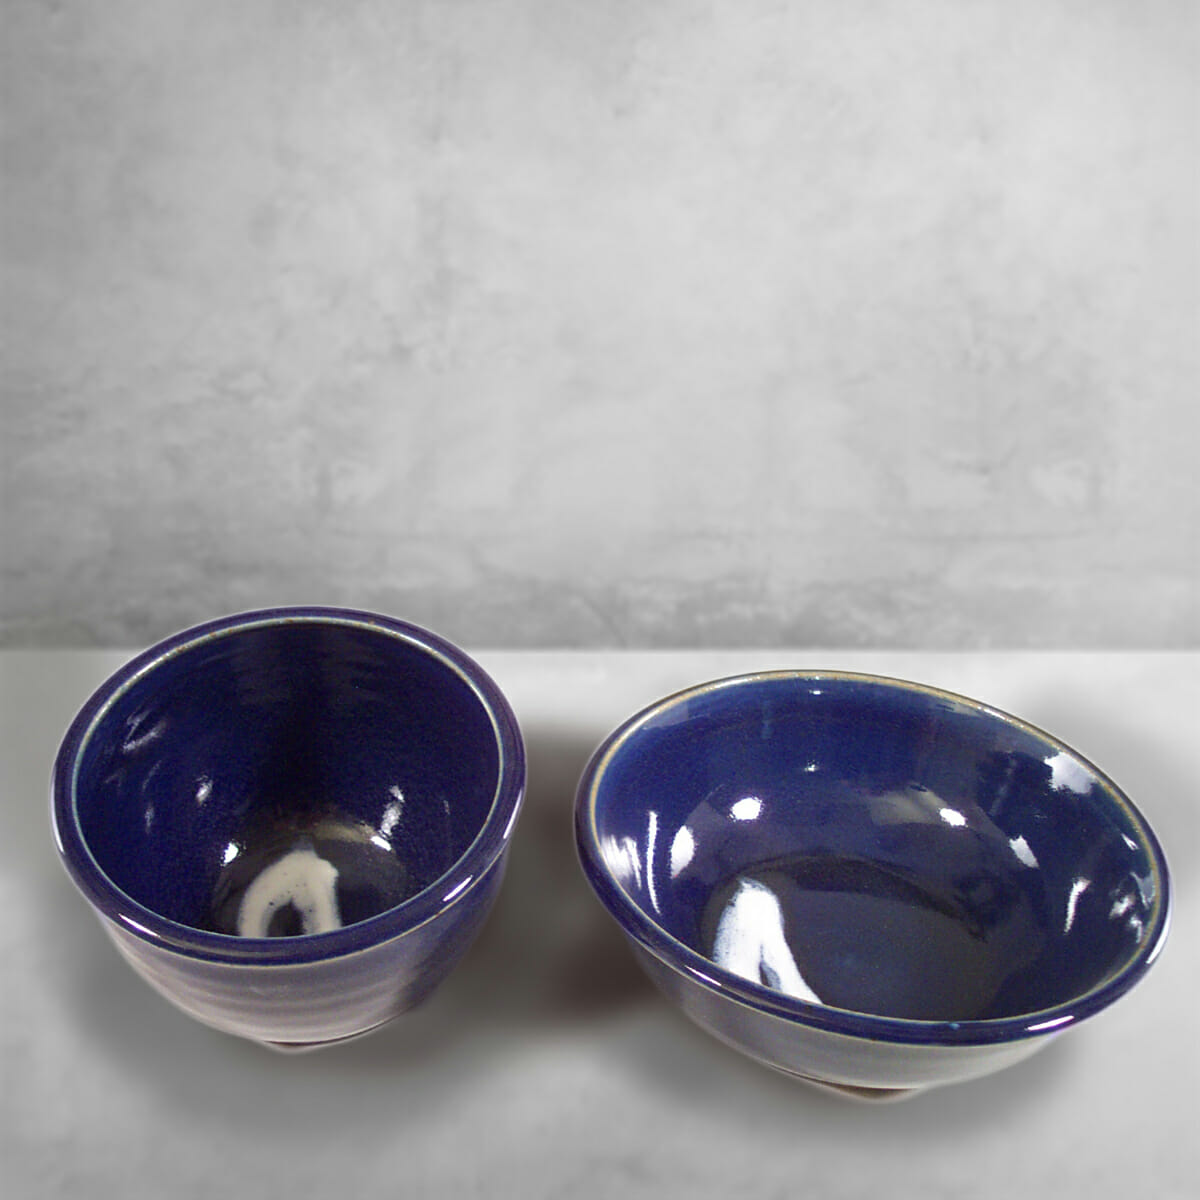 Deep Bowls,Sizes Small and Medium, Smooth Design  in Dark Blue Glaze with white Stripes